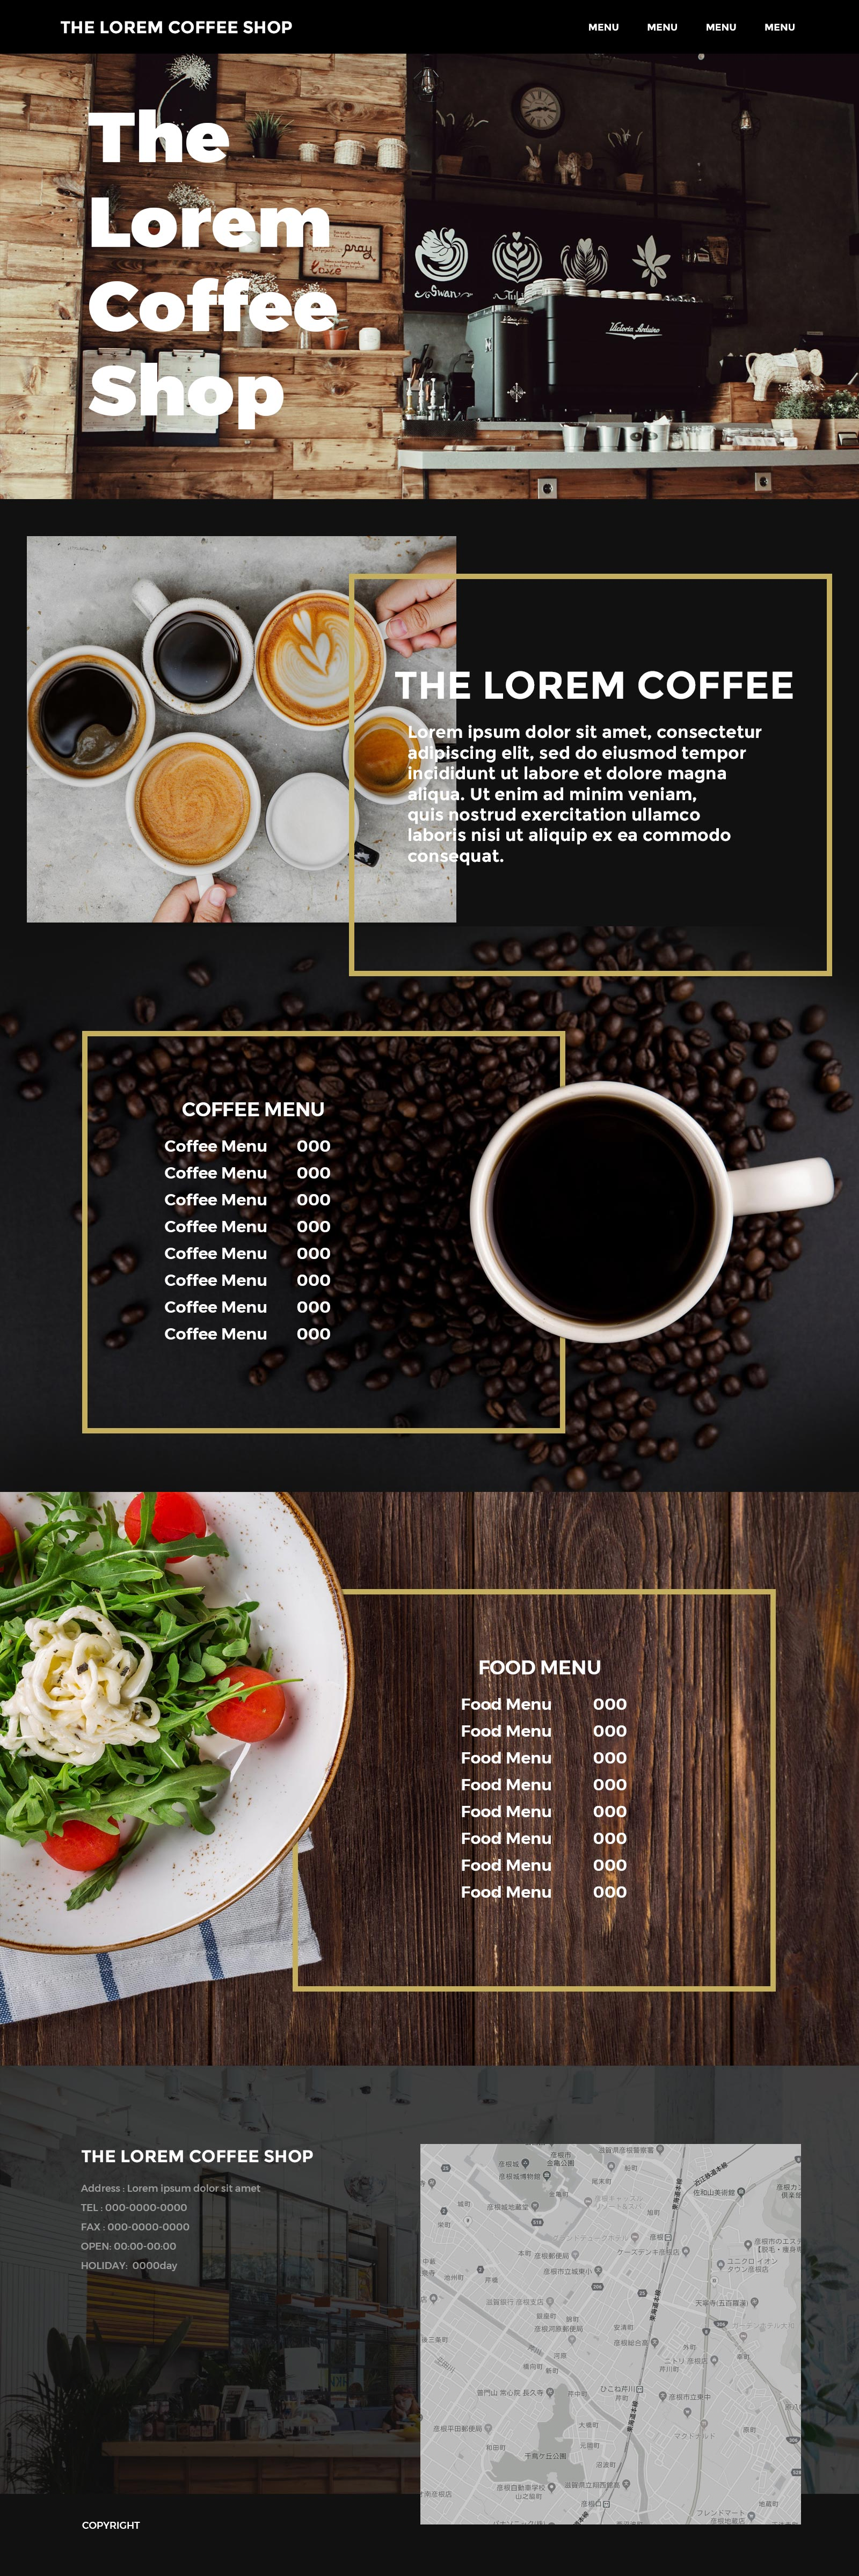 creator s recipe coffee shop web layout psdファイル